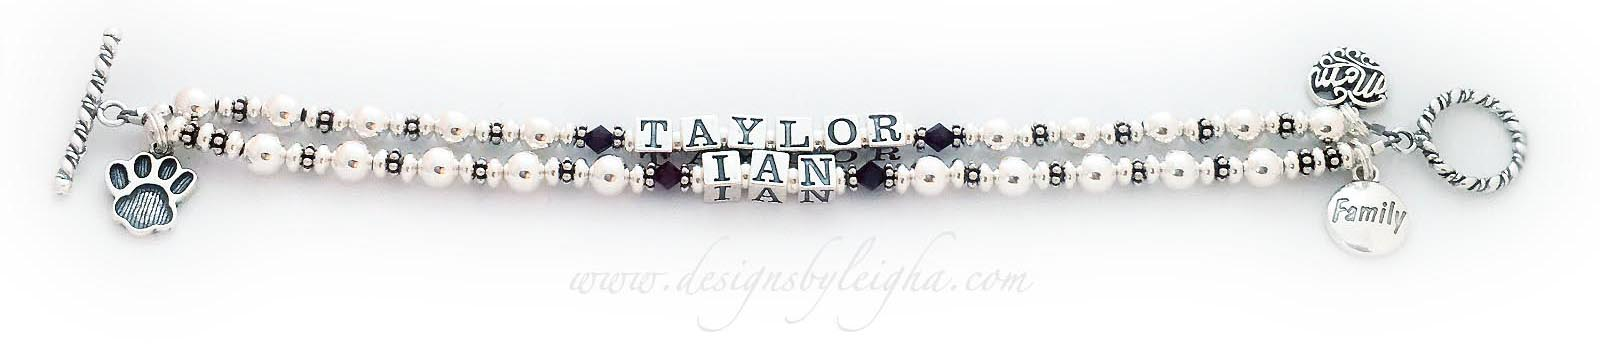 DBL-SS8-2 string  Taylor and Ian on a 2-string Mother Bracelet with 3 beautiful charms; Filigree Mom charm, FAMILY charm and a Paw Print charm with a Twisted Toggle Clasp.